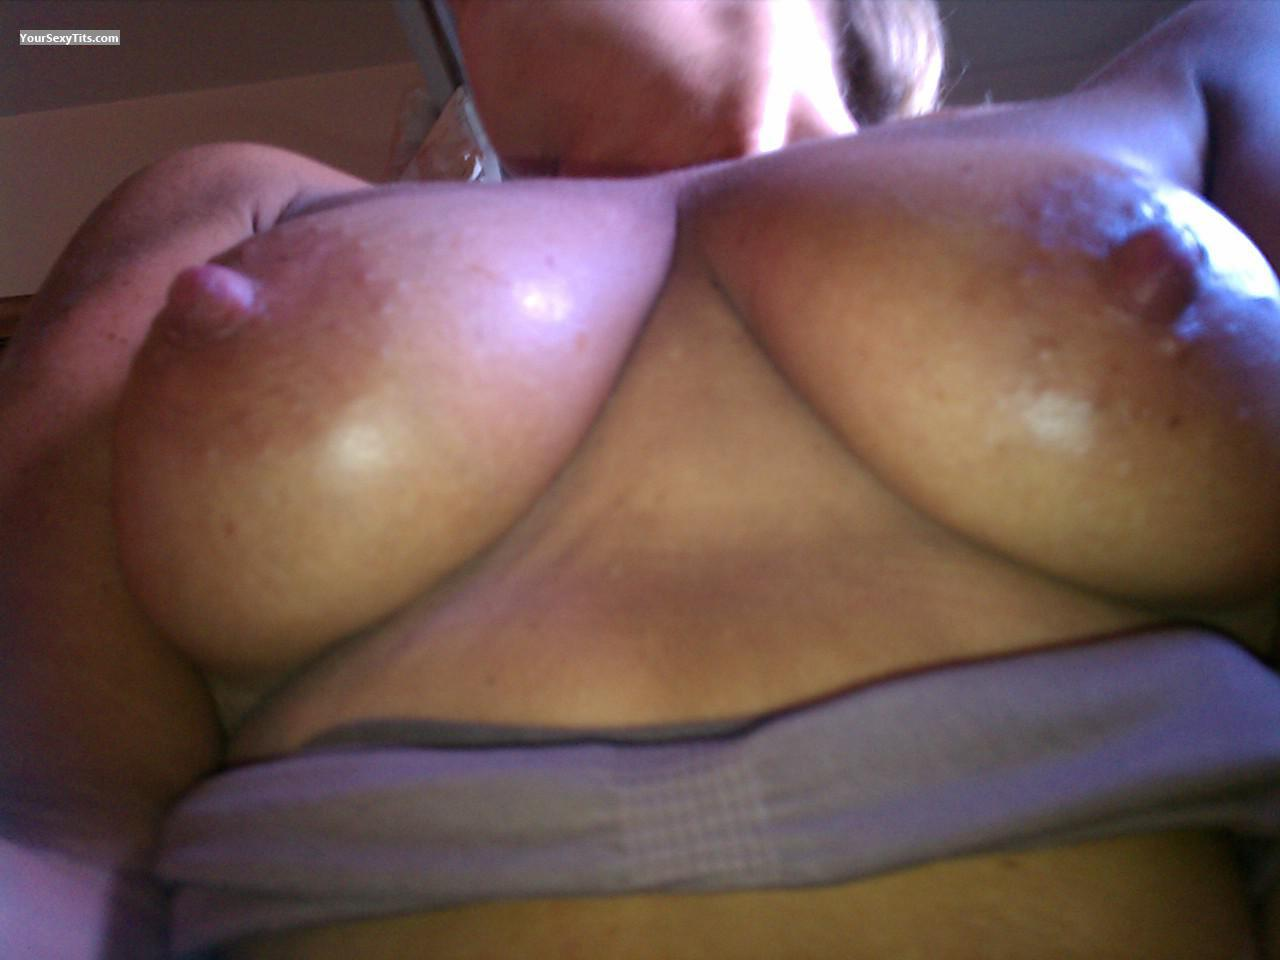 My Medium Tits Selfie by Love To Share